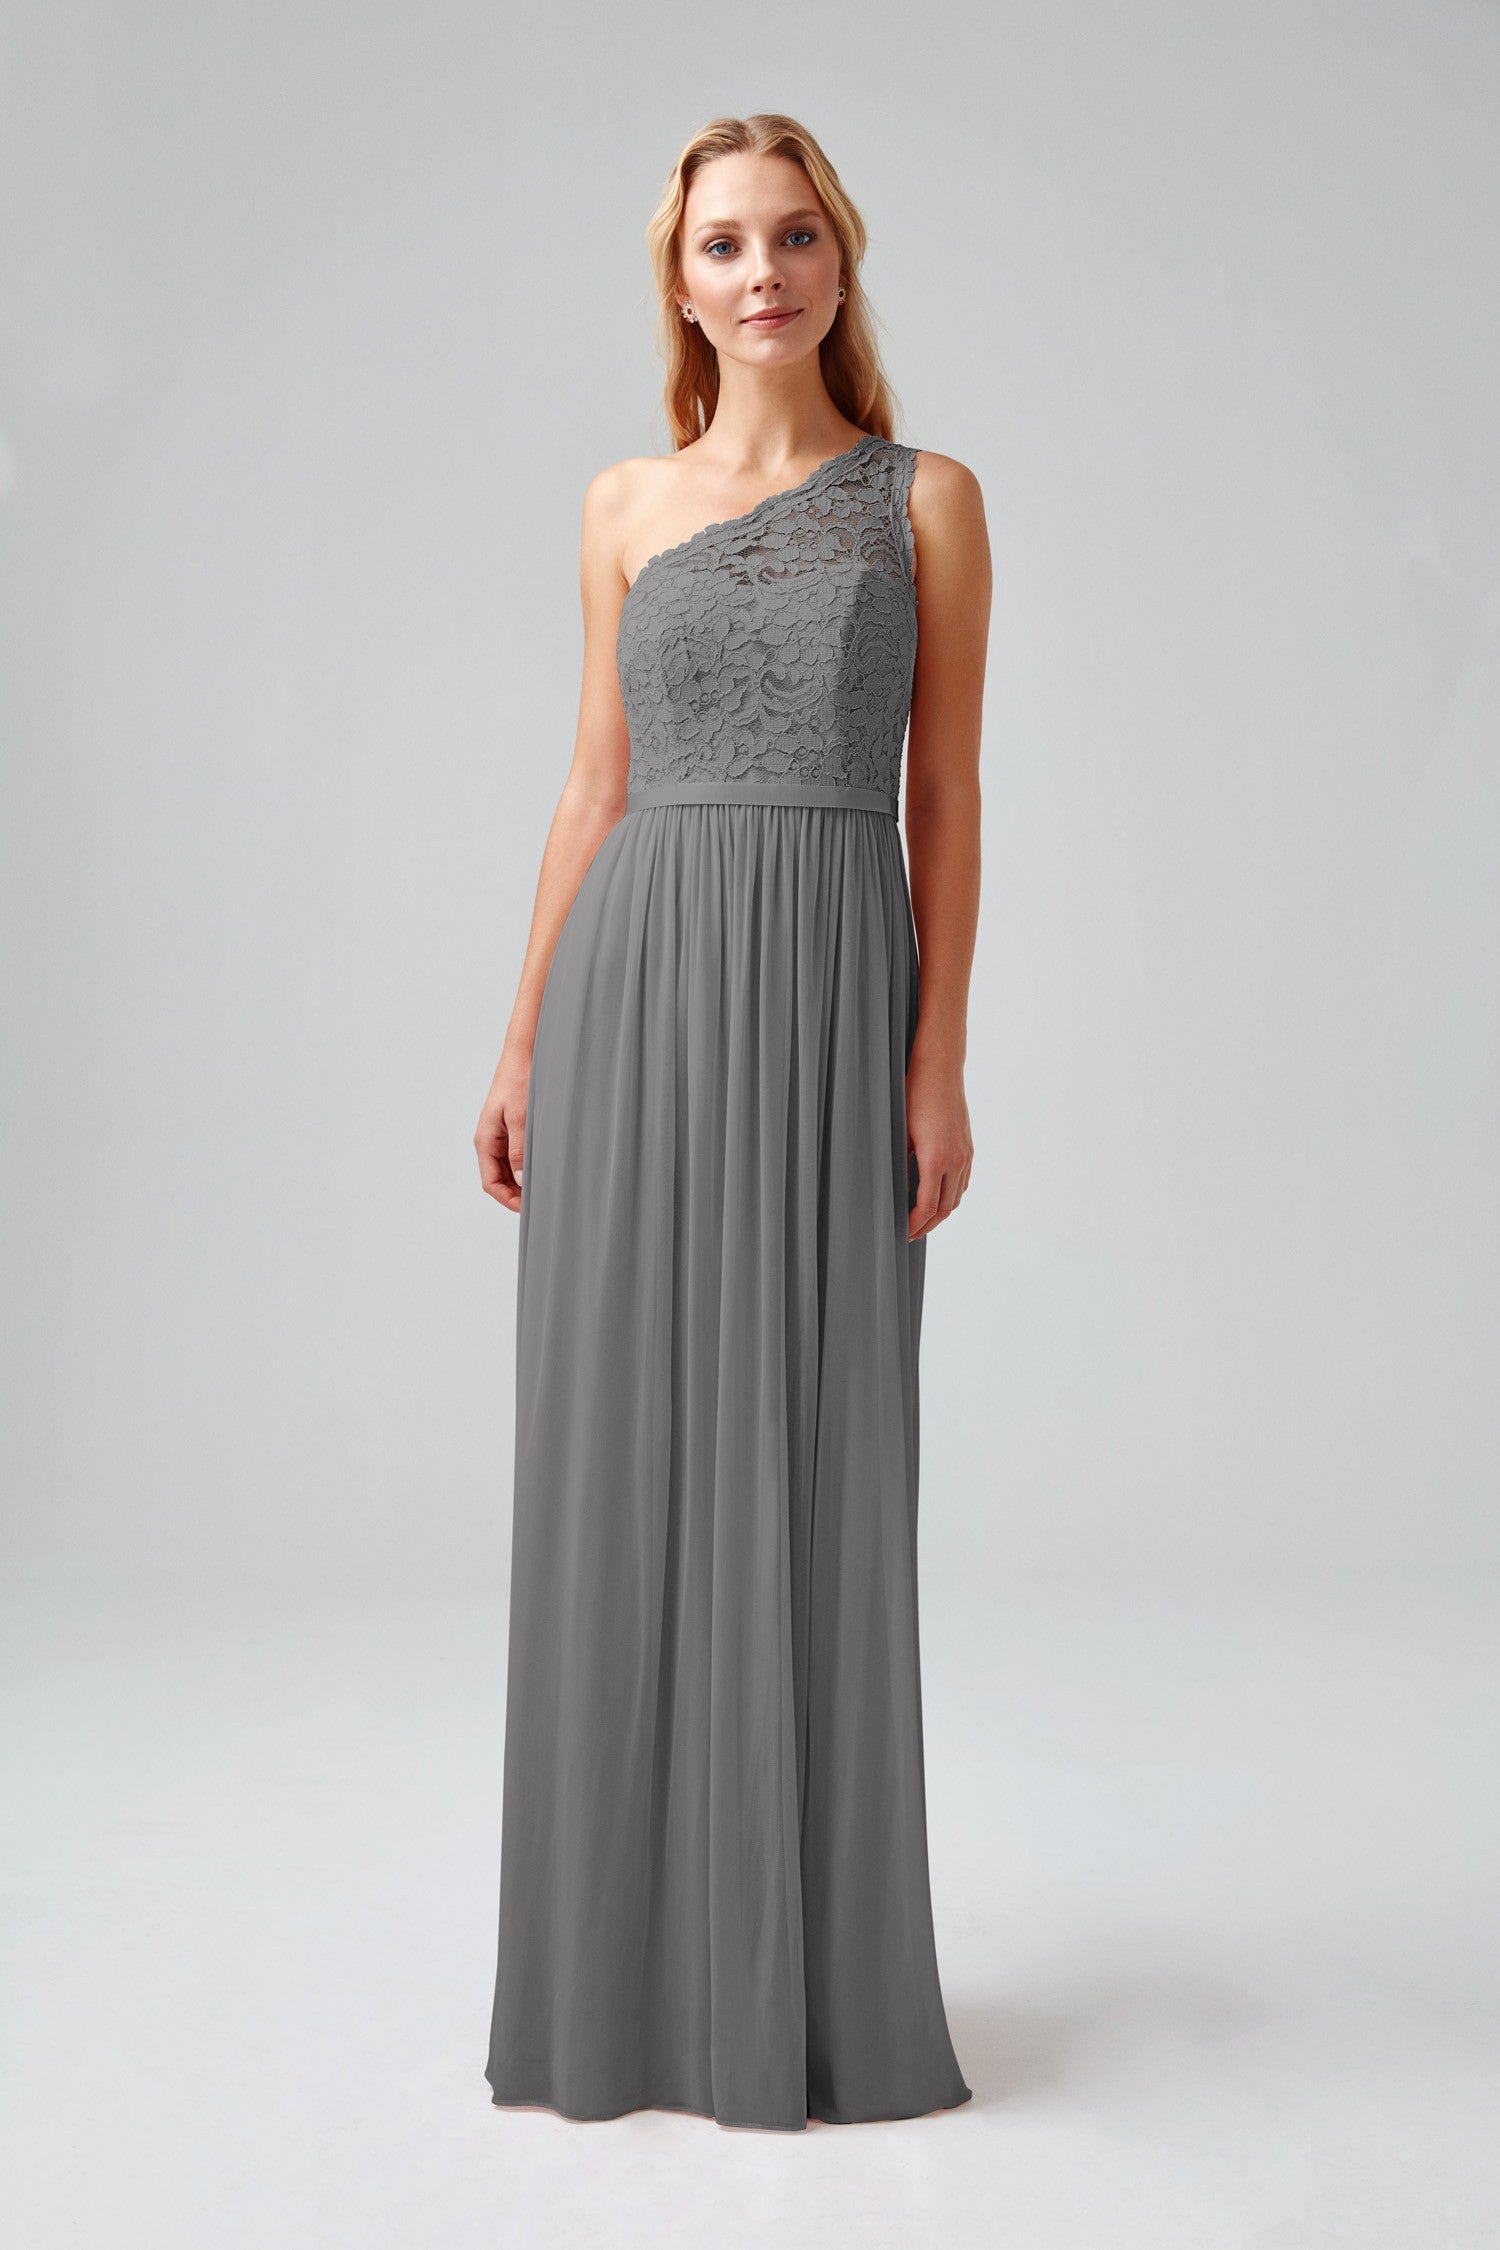 e6bbf462191 Long One Shoulder Lace Bridesmaid Dress